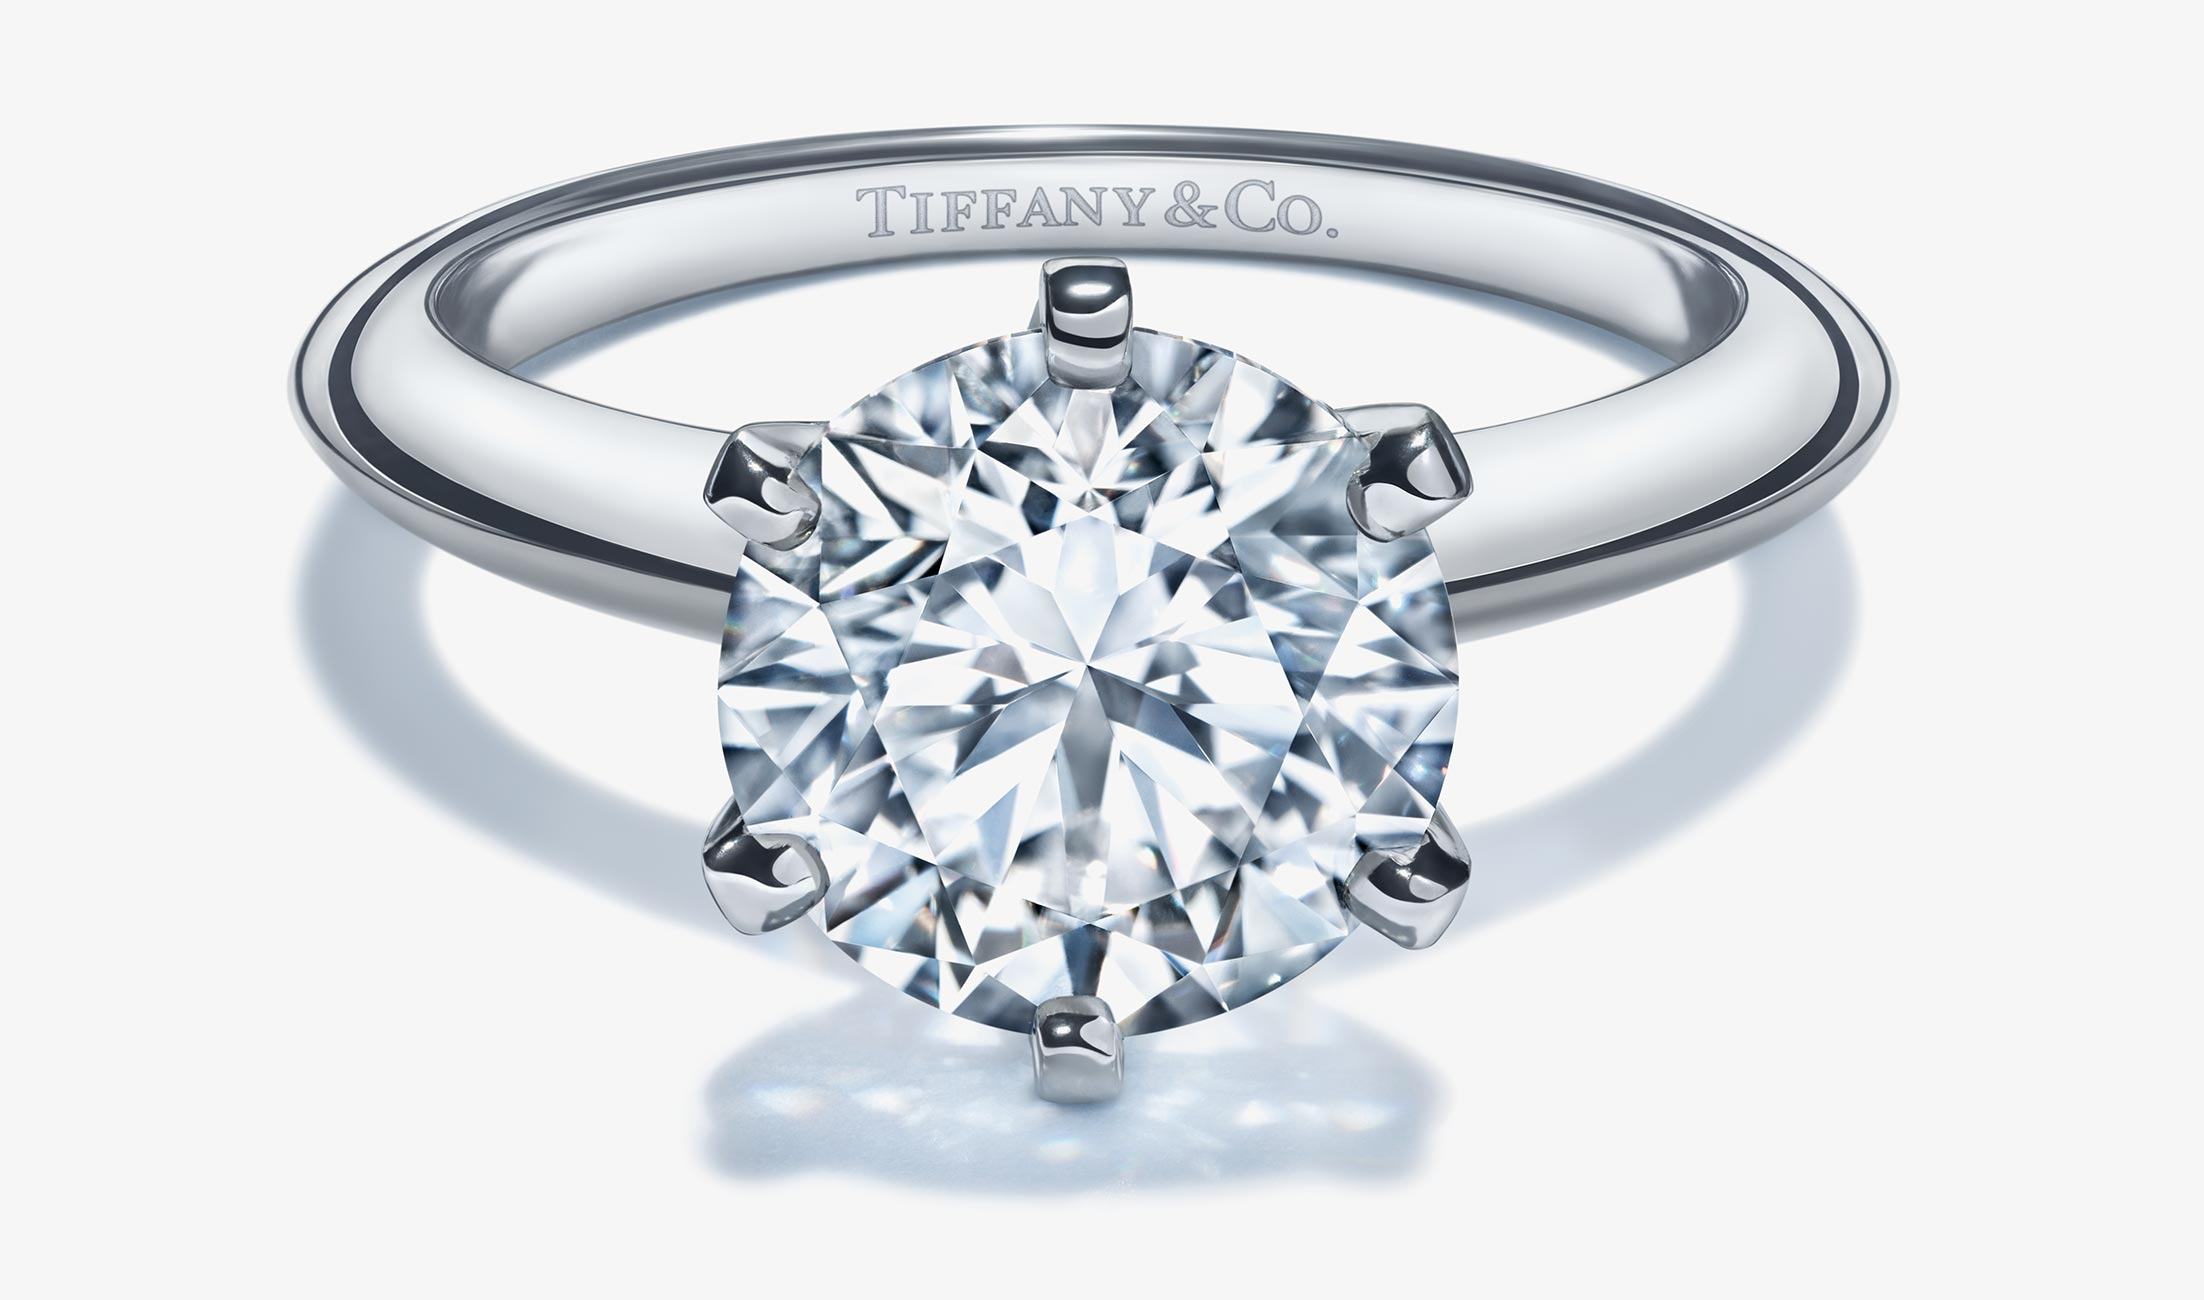 Ring clipart tiffany engagement ring Tiffany Difference Engagement Tiffany &